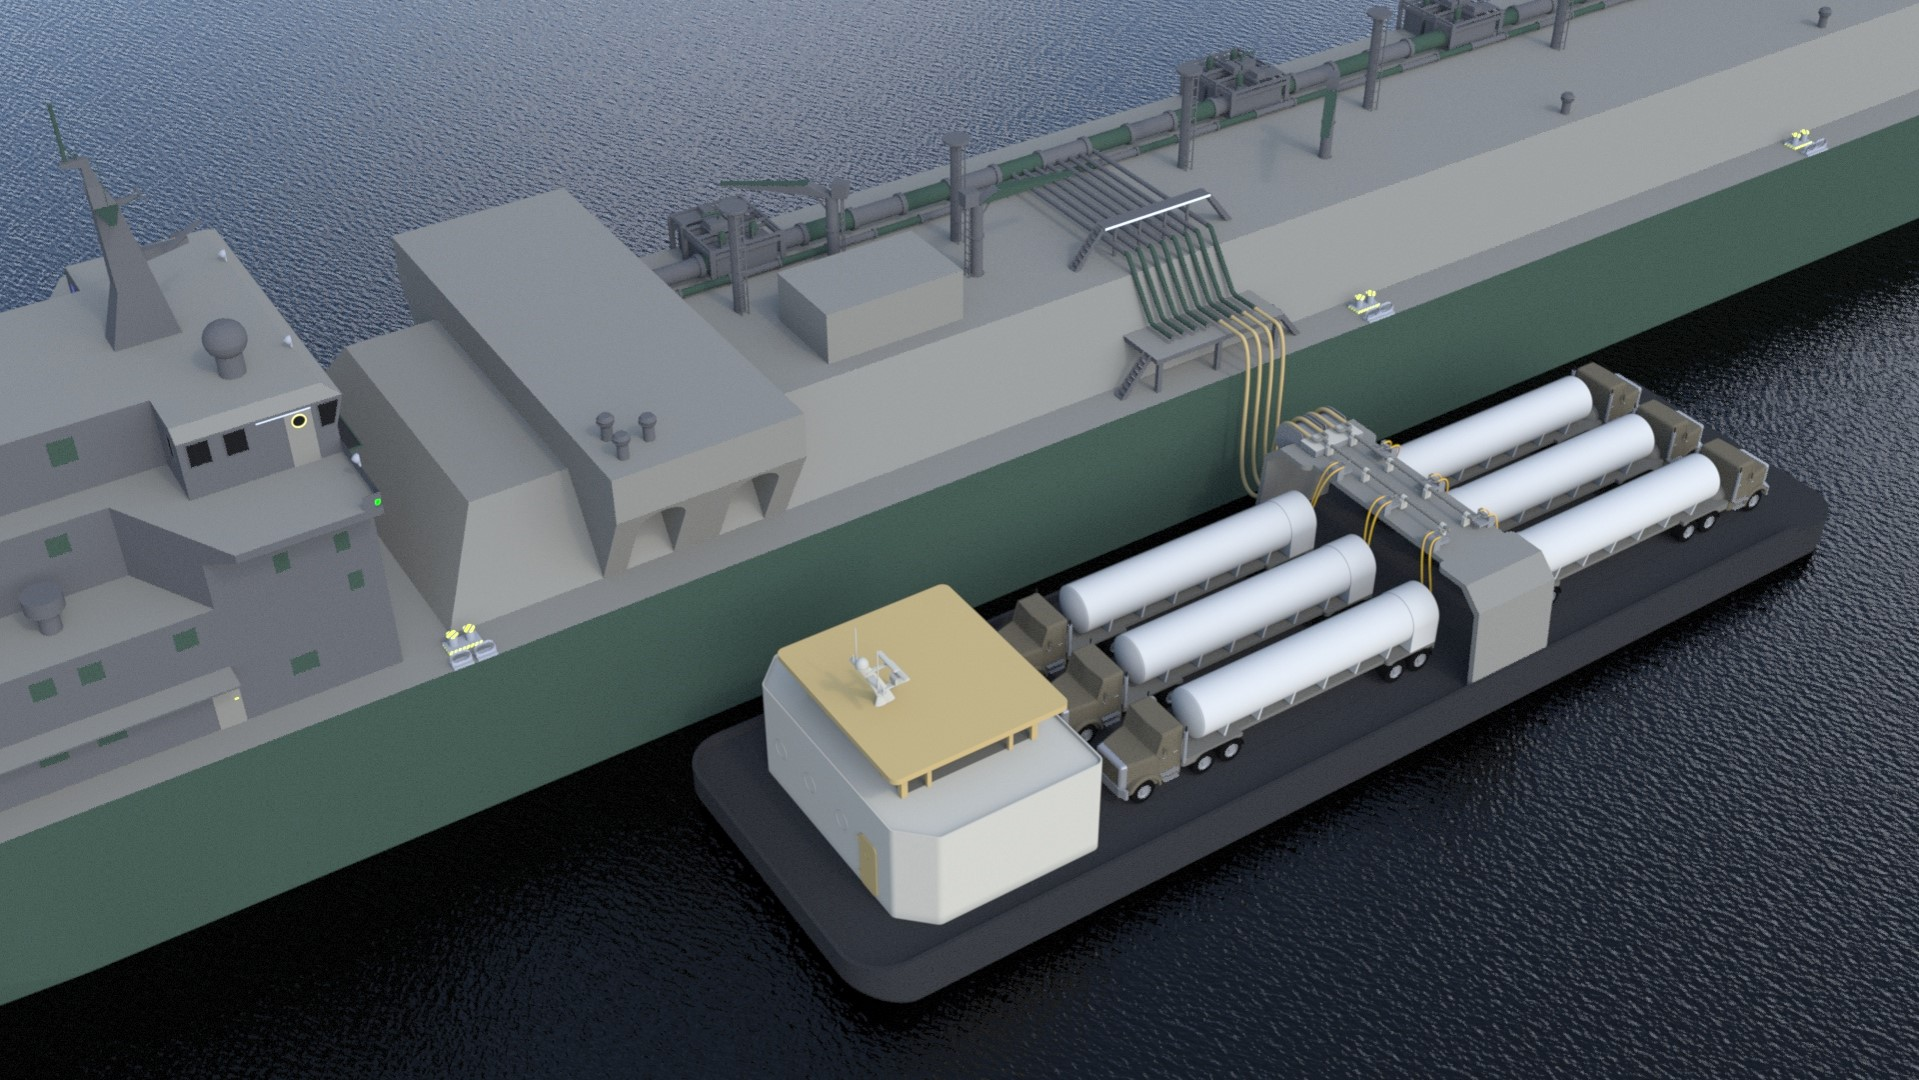 Spain's Naturgy launches new LNG distribution system - Offshore Energy